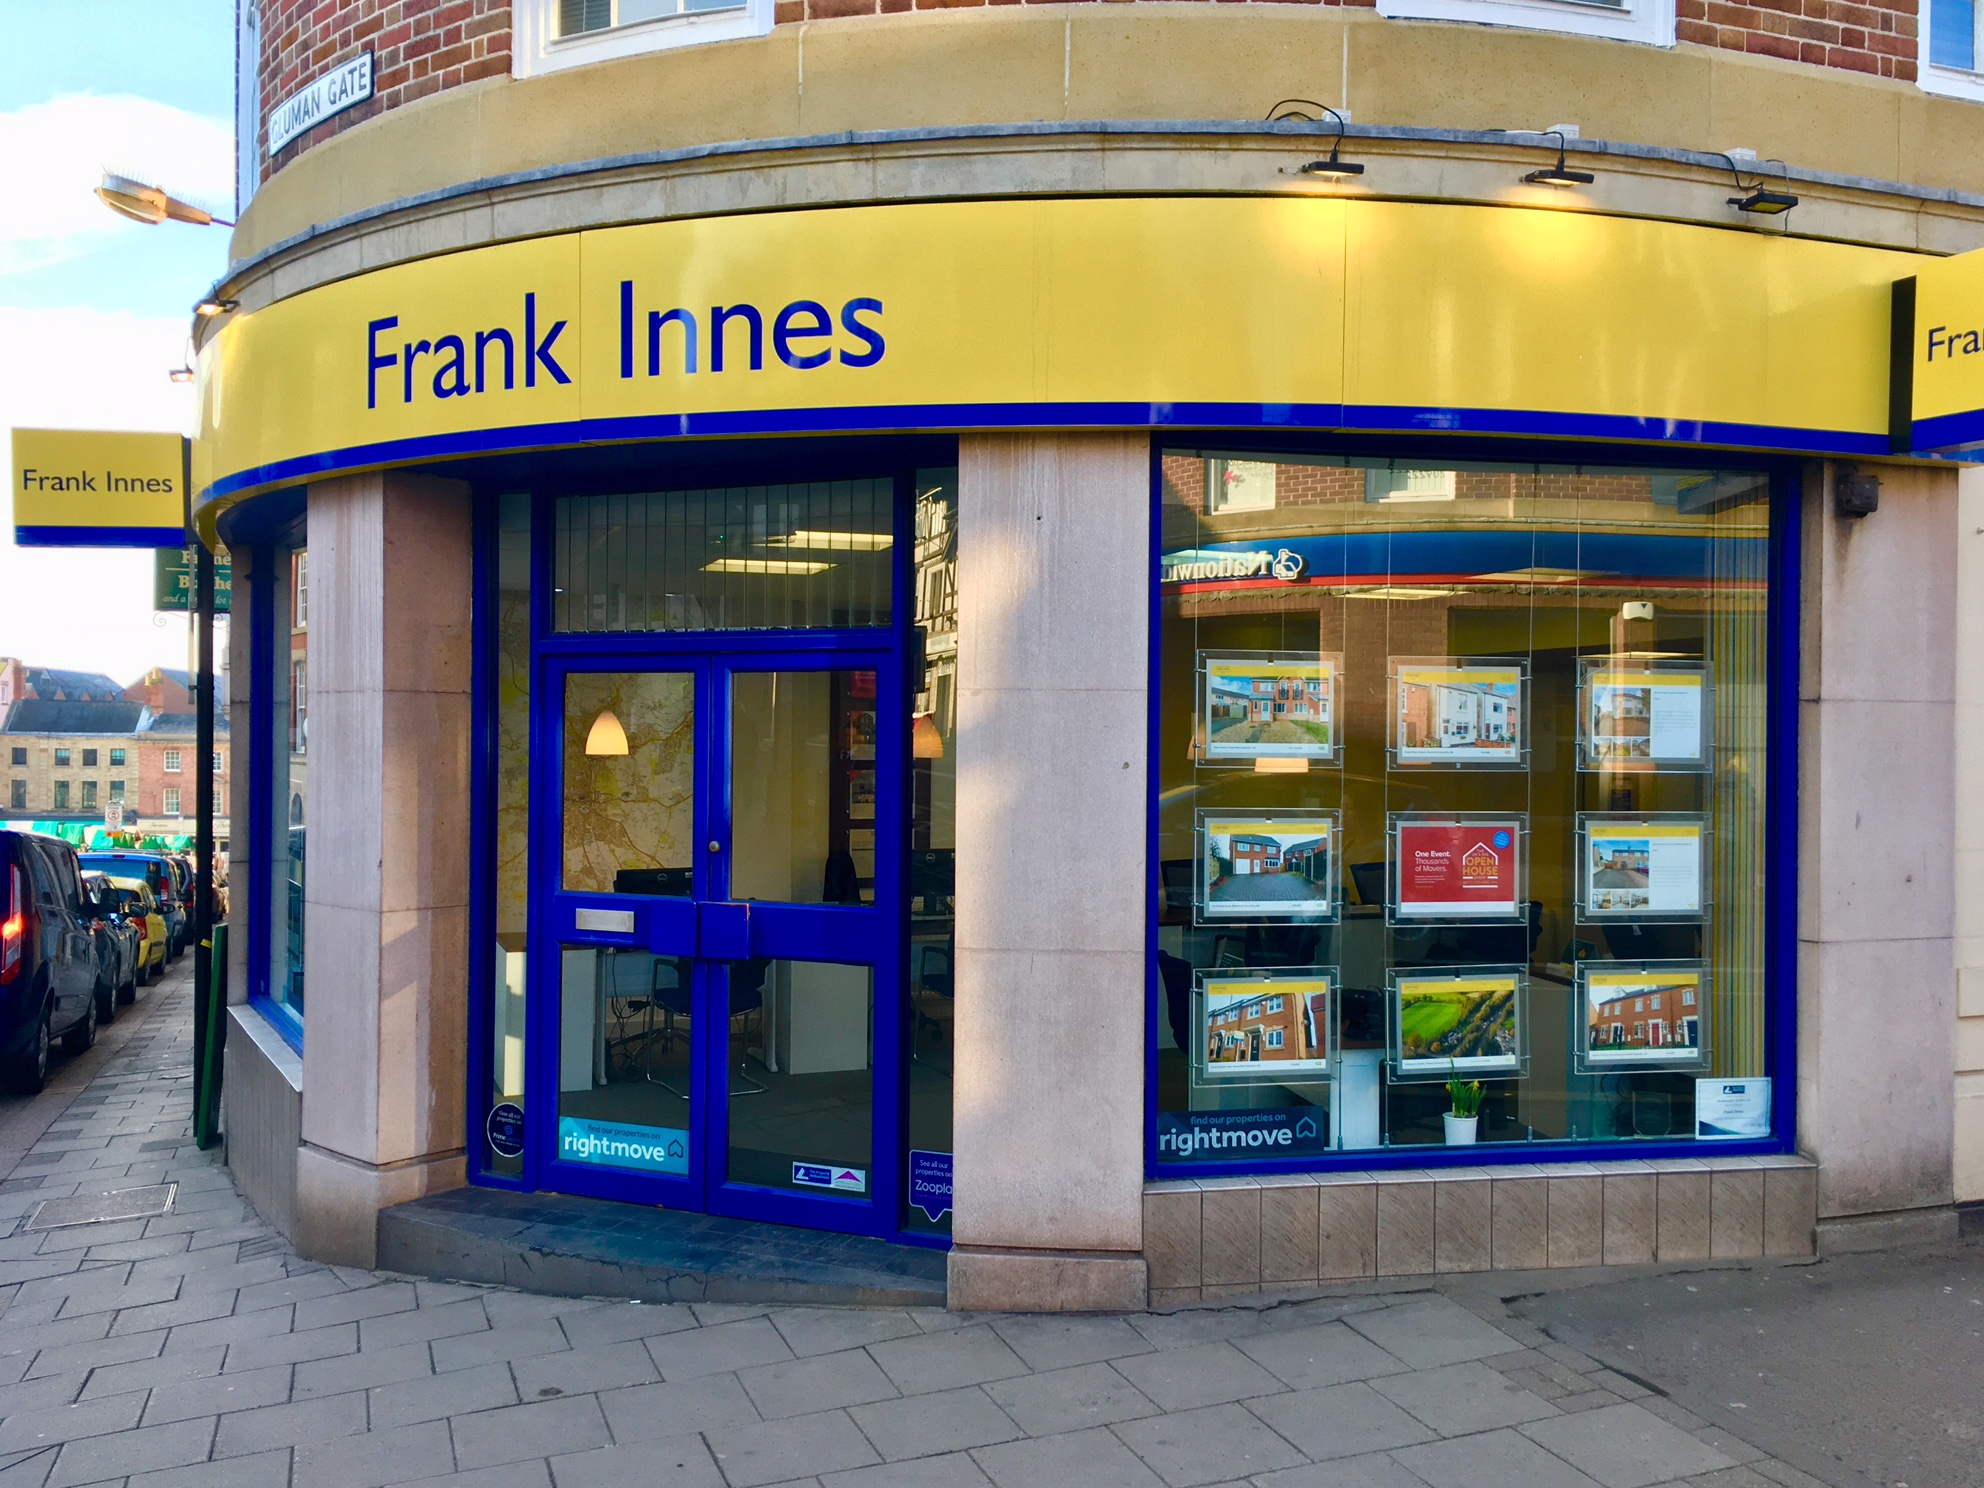 Frank Innes Estate Agents Chesterfield Chesterfield 01246 700251